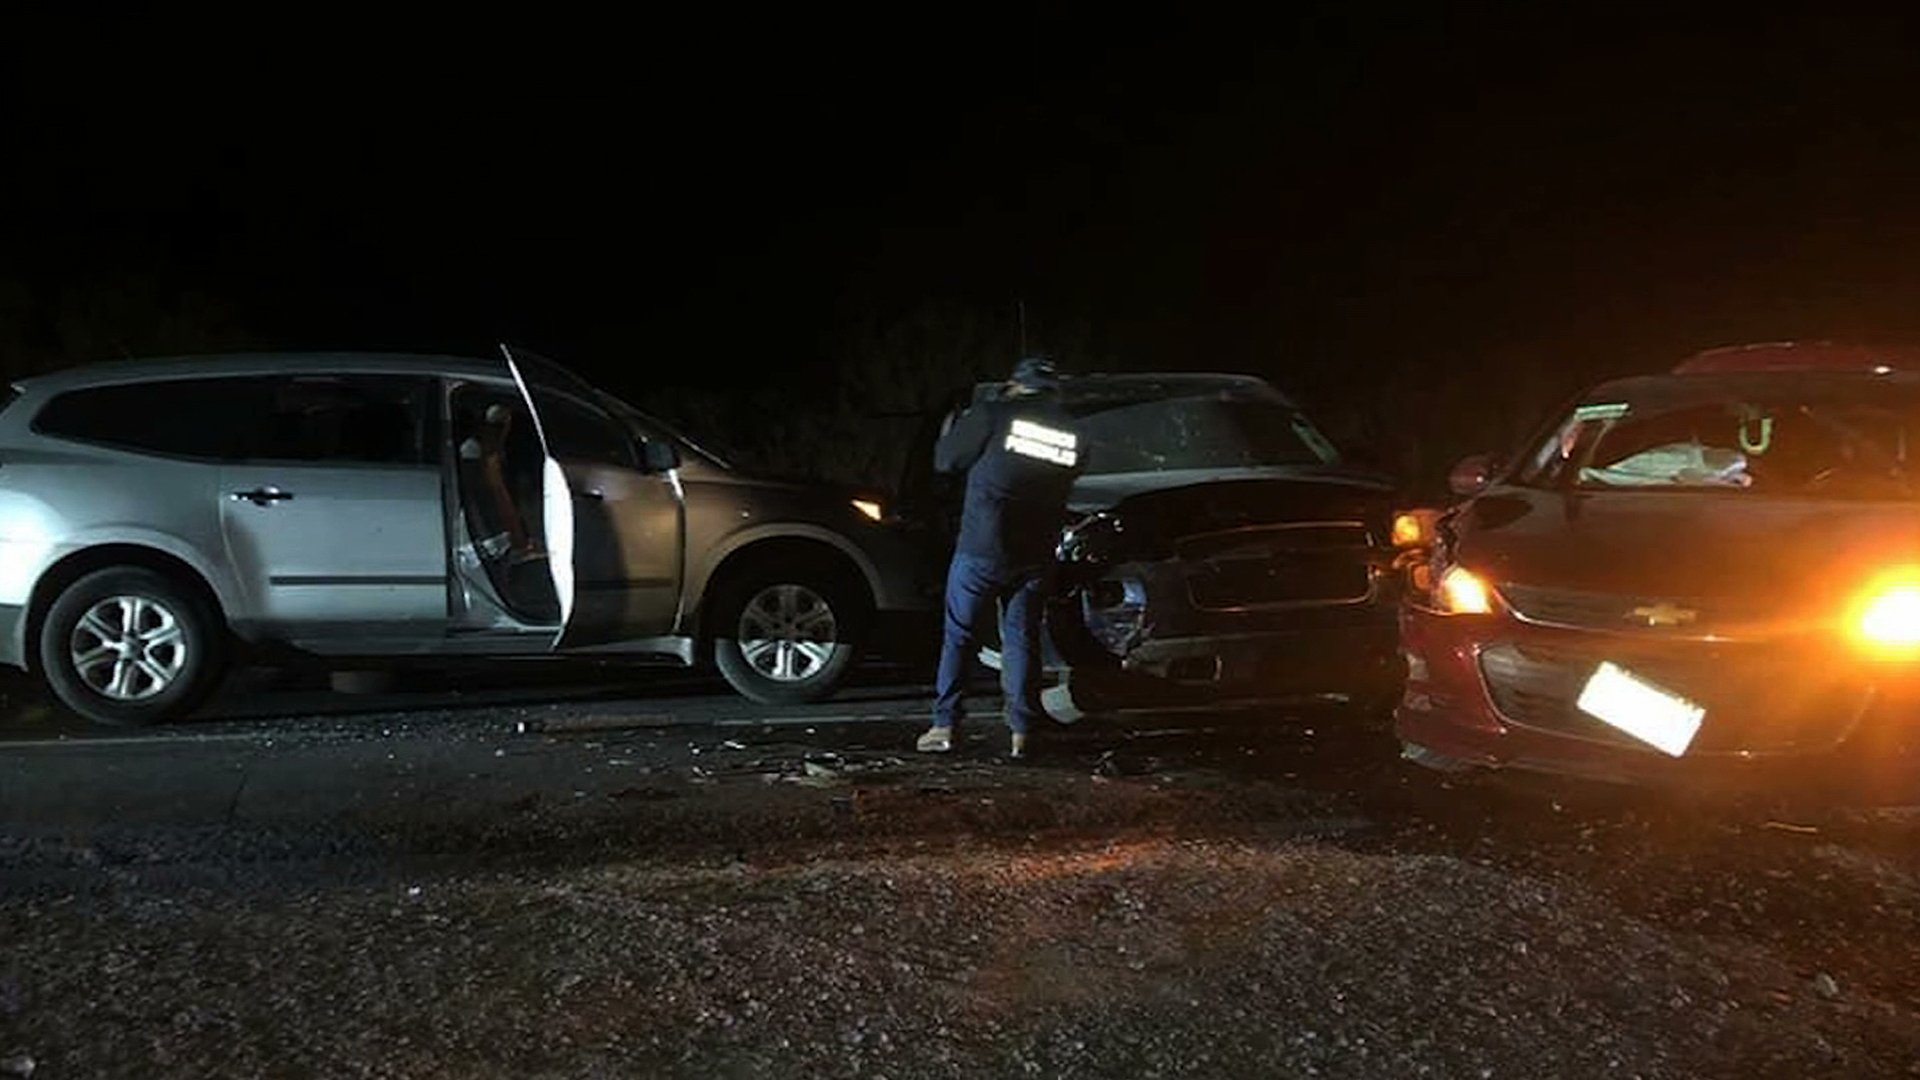 The scene where a family from Oklahoma was attacked on Jan. 4, 2020, near the U.S. border in Tamaulipas state, Mexico, is seen in a photo obtained by CNN.